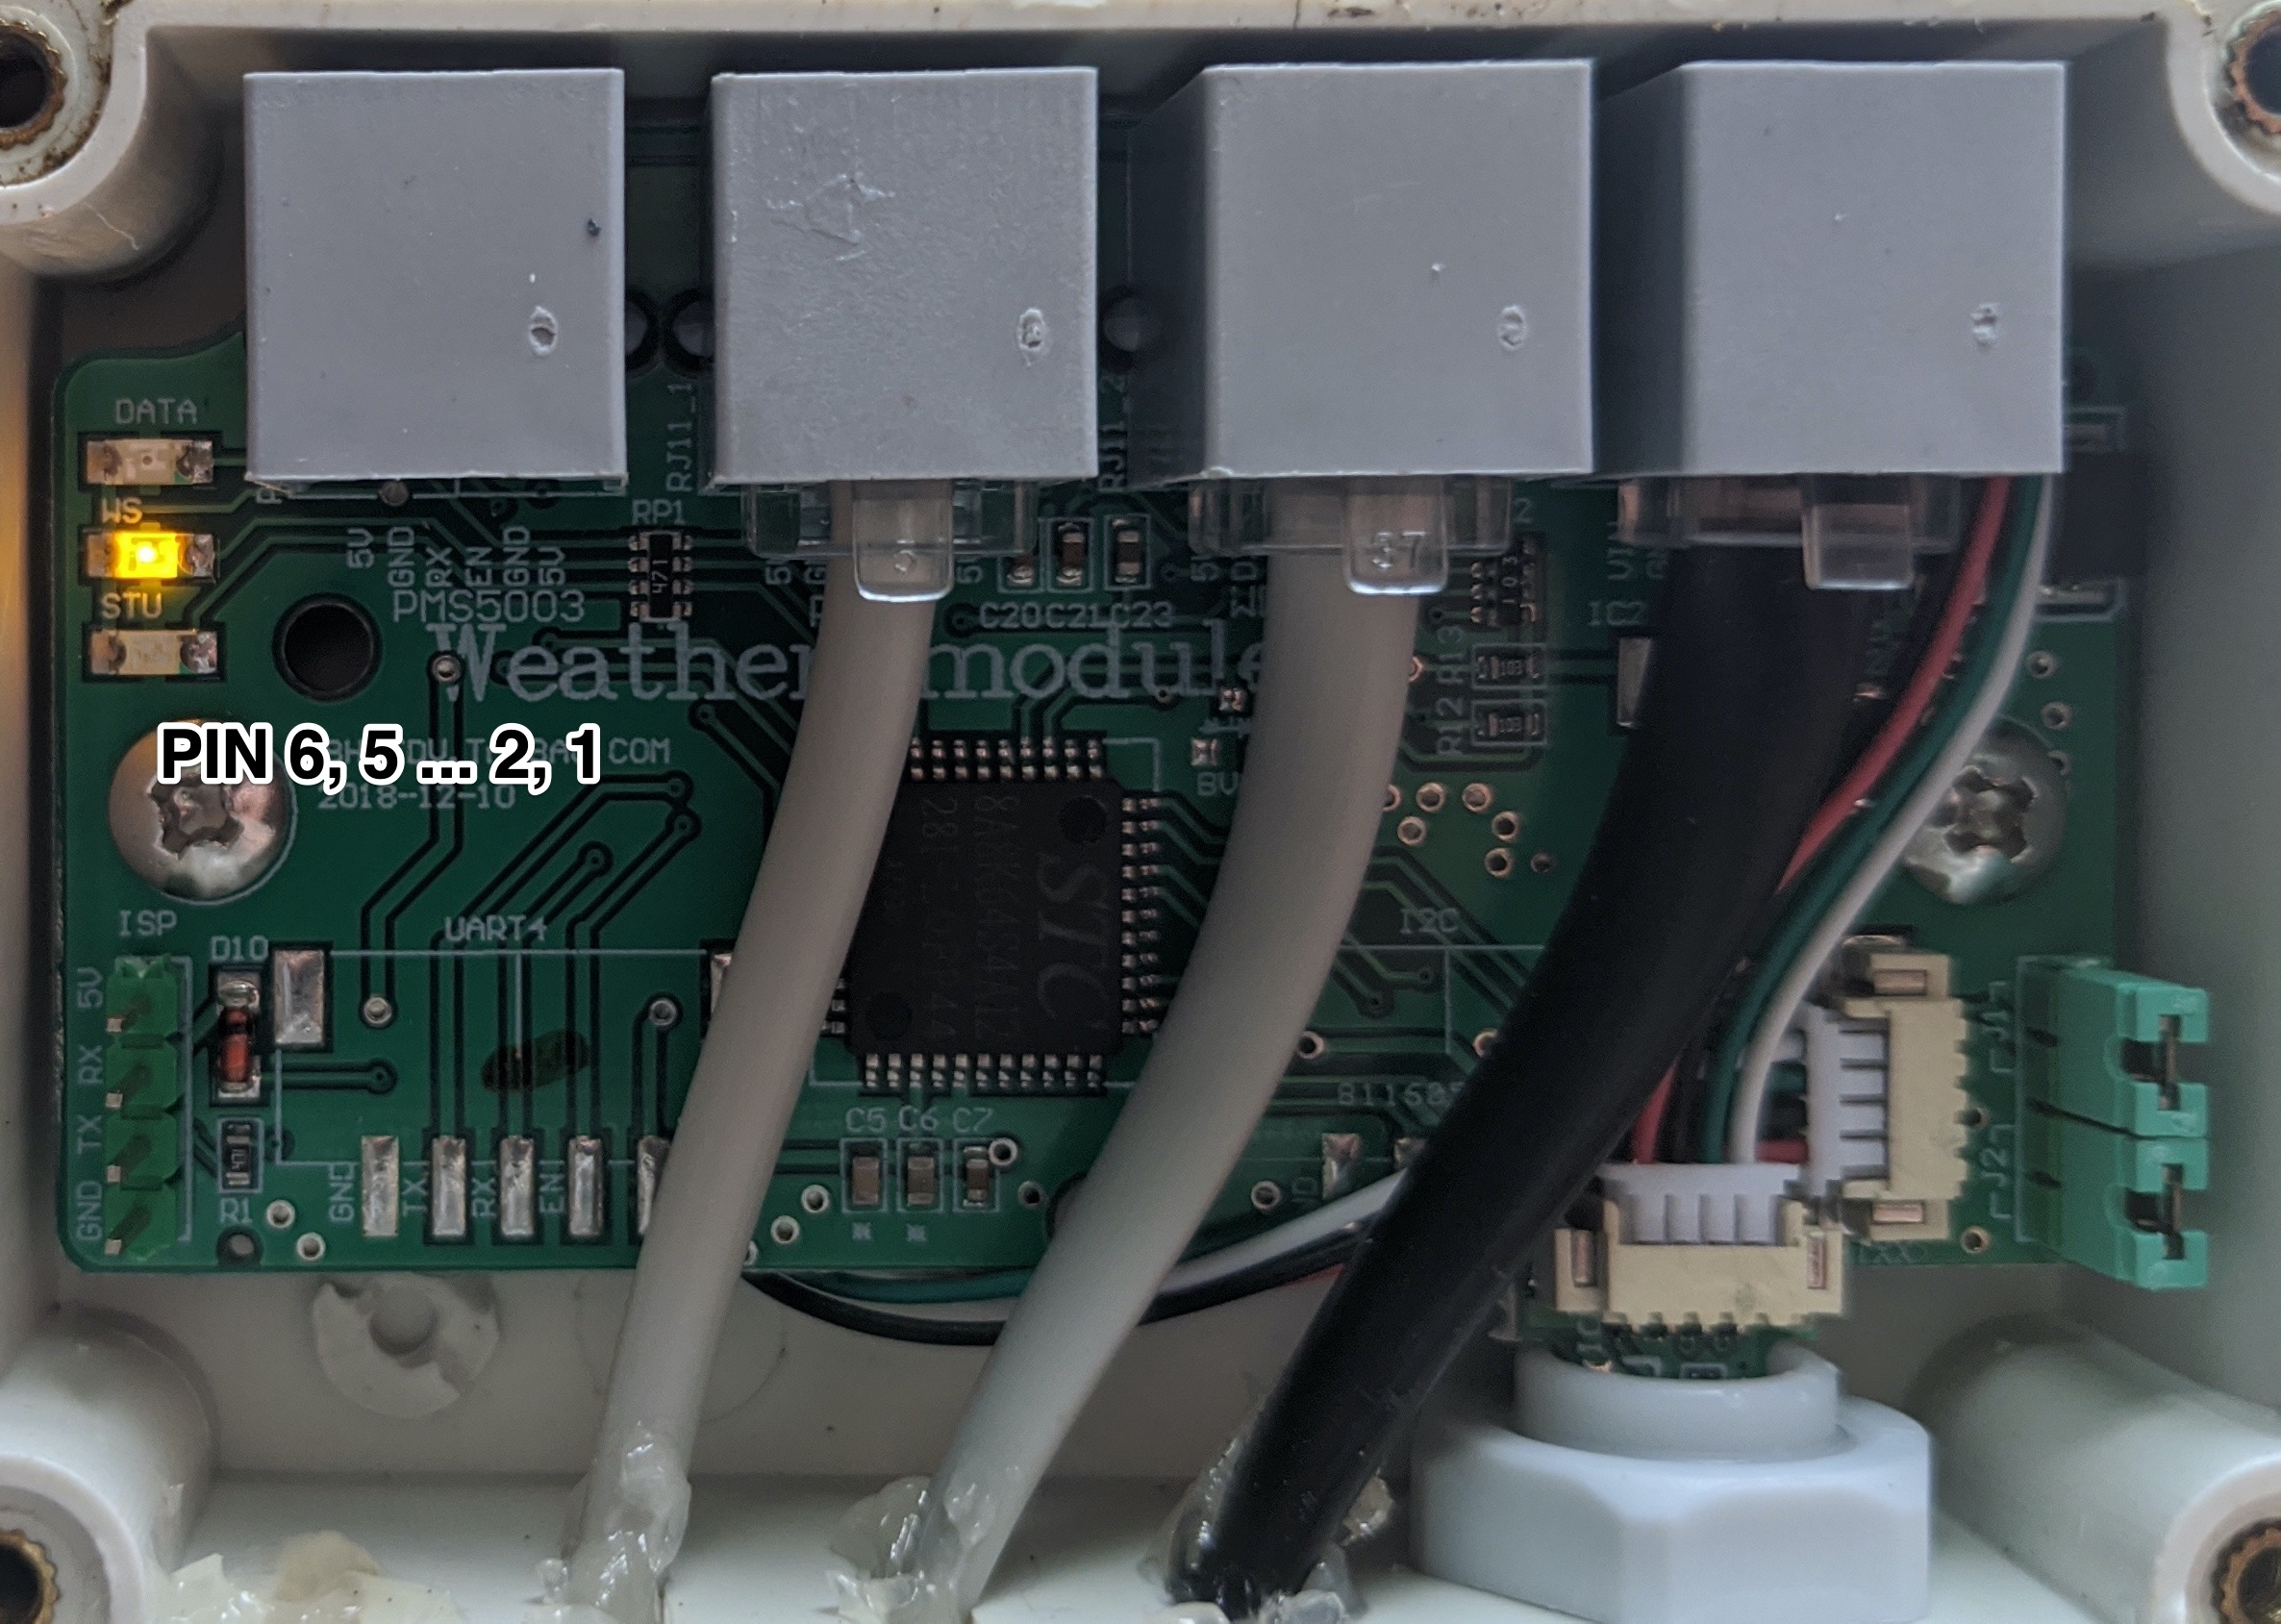 Screenshot showing the RJ11 jack on WS3 board w/ pin numbers